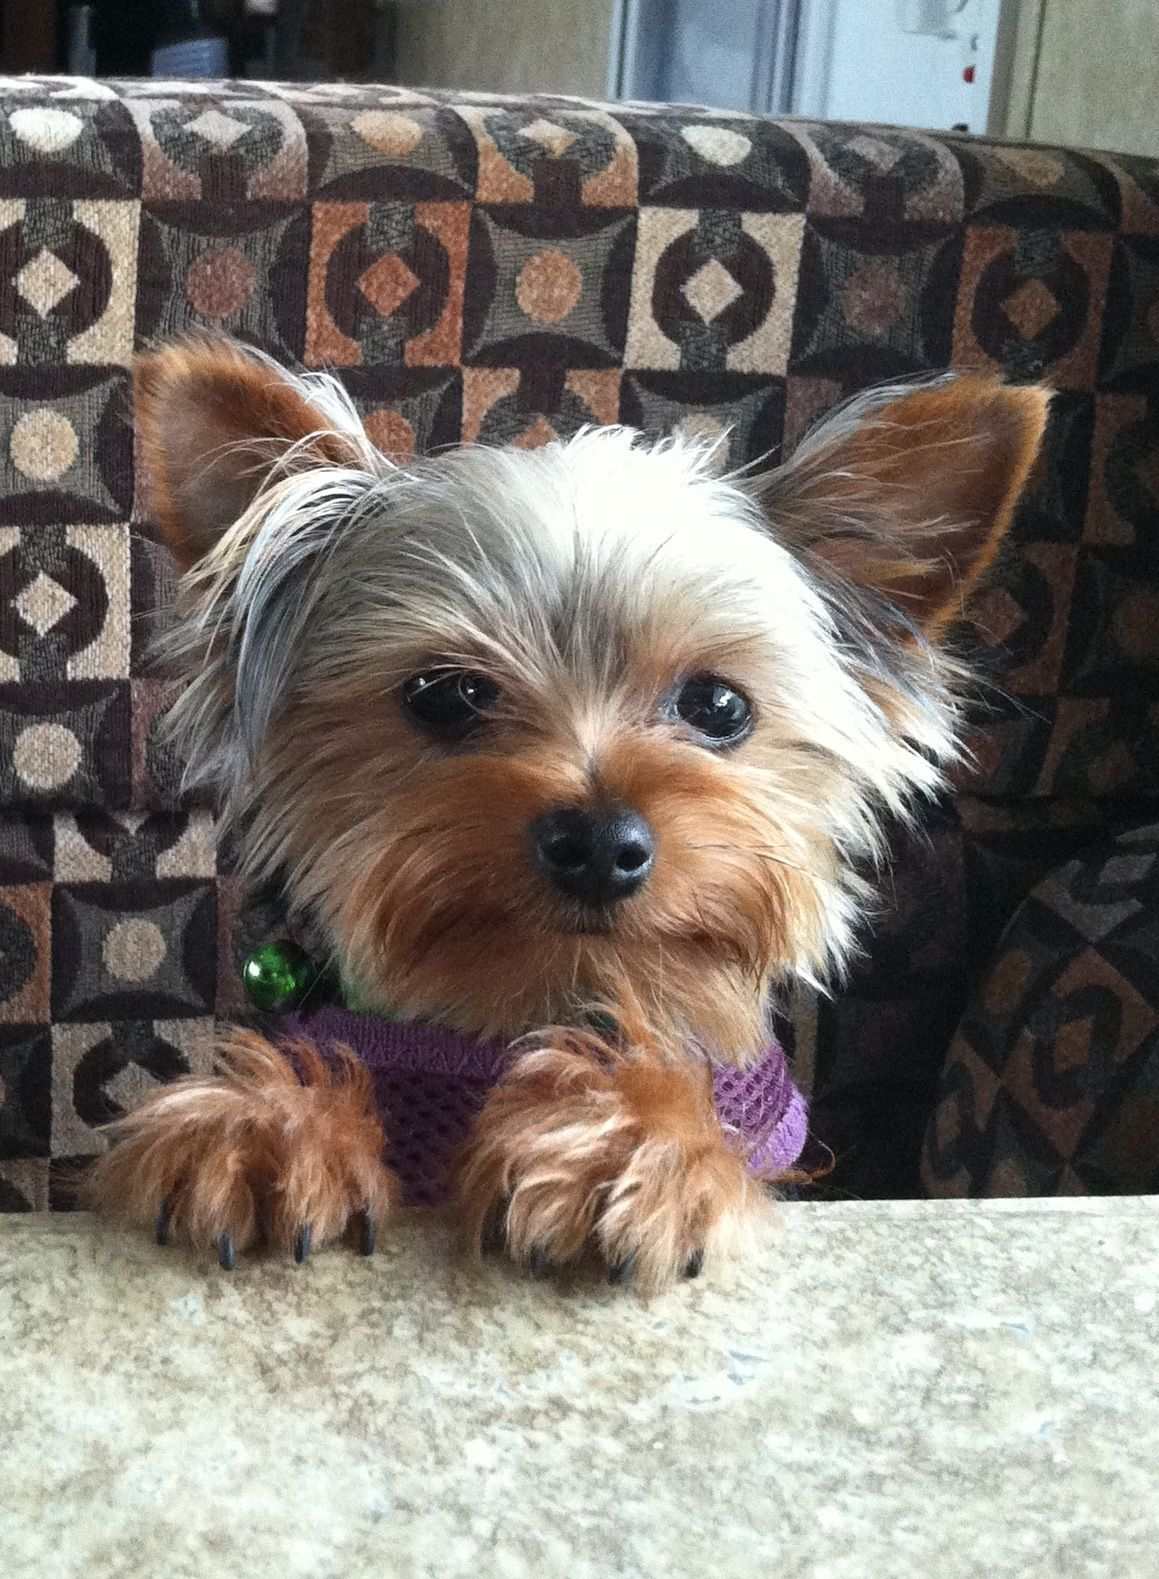 Yorkie ready to have breakfast at the table my chorkie does this